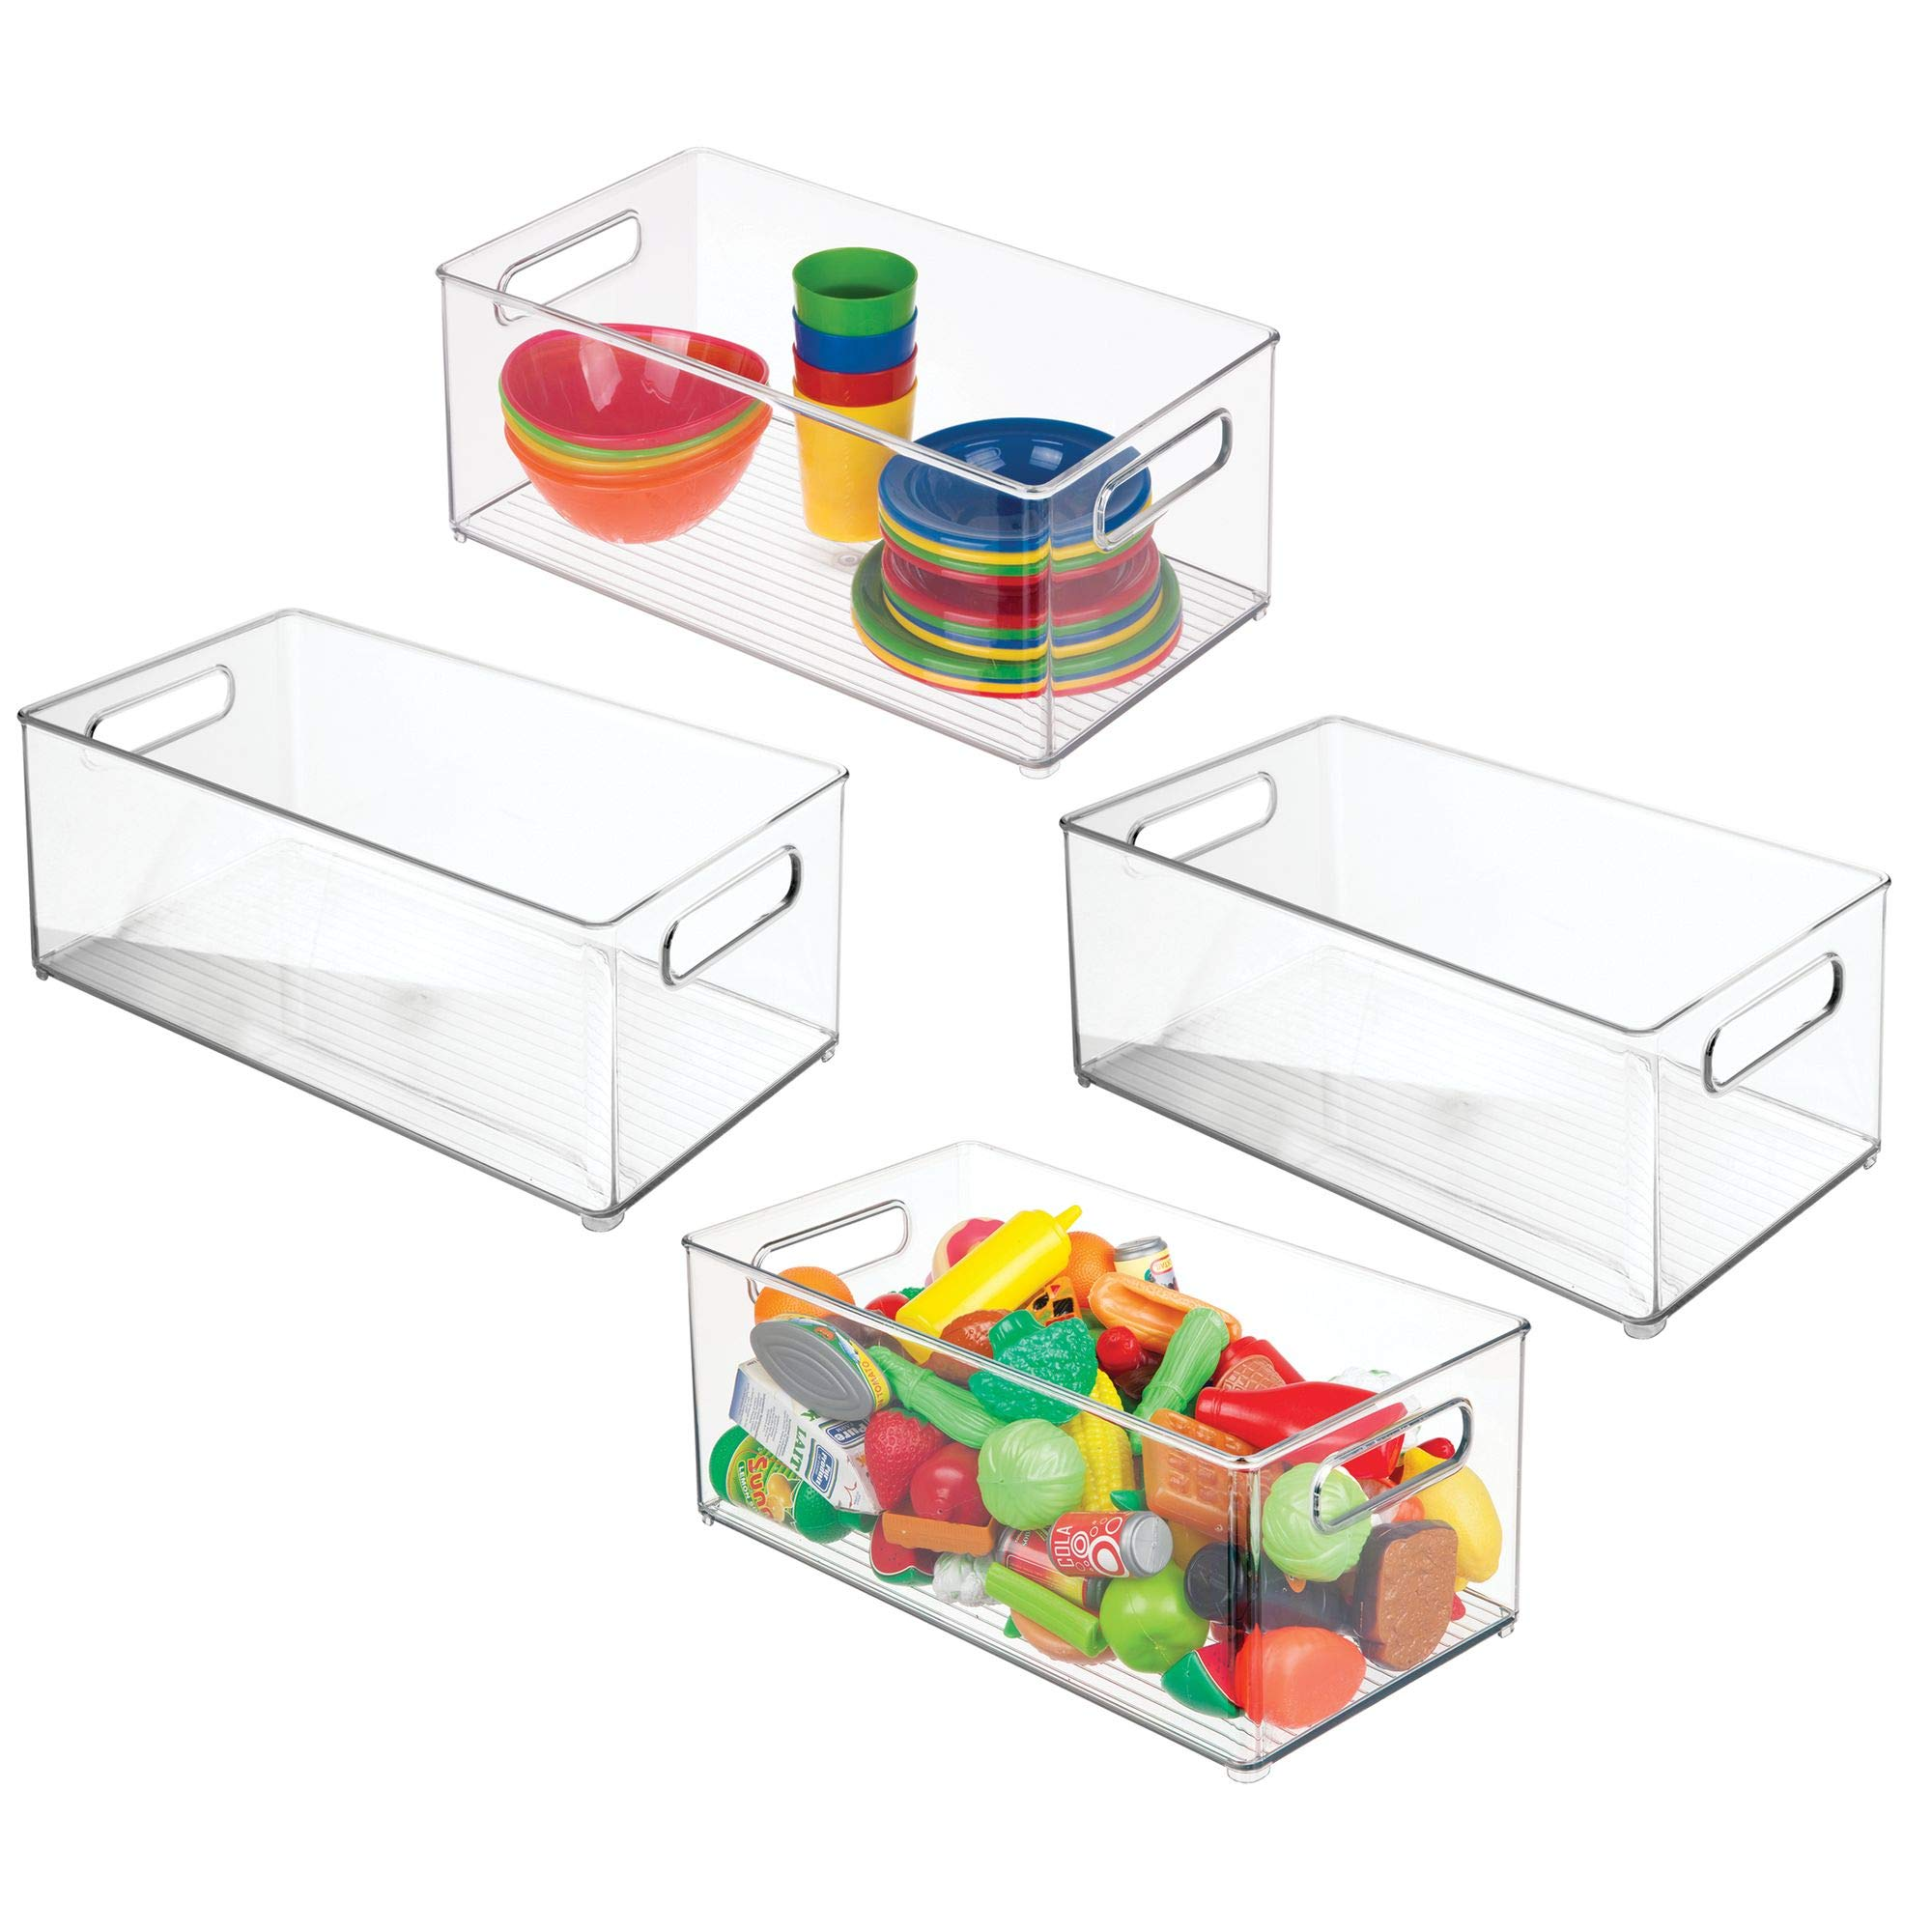 mDesign Plastic Kids Baby Cat Dog Toys Storage Organizers Bins Totes Baskets for Action Figures, Crayons, Legos Puzzles Wood Blocks Stuffed Animals - Set of 4, 8'' x 6'' x 14.5'', Clear